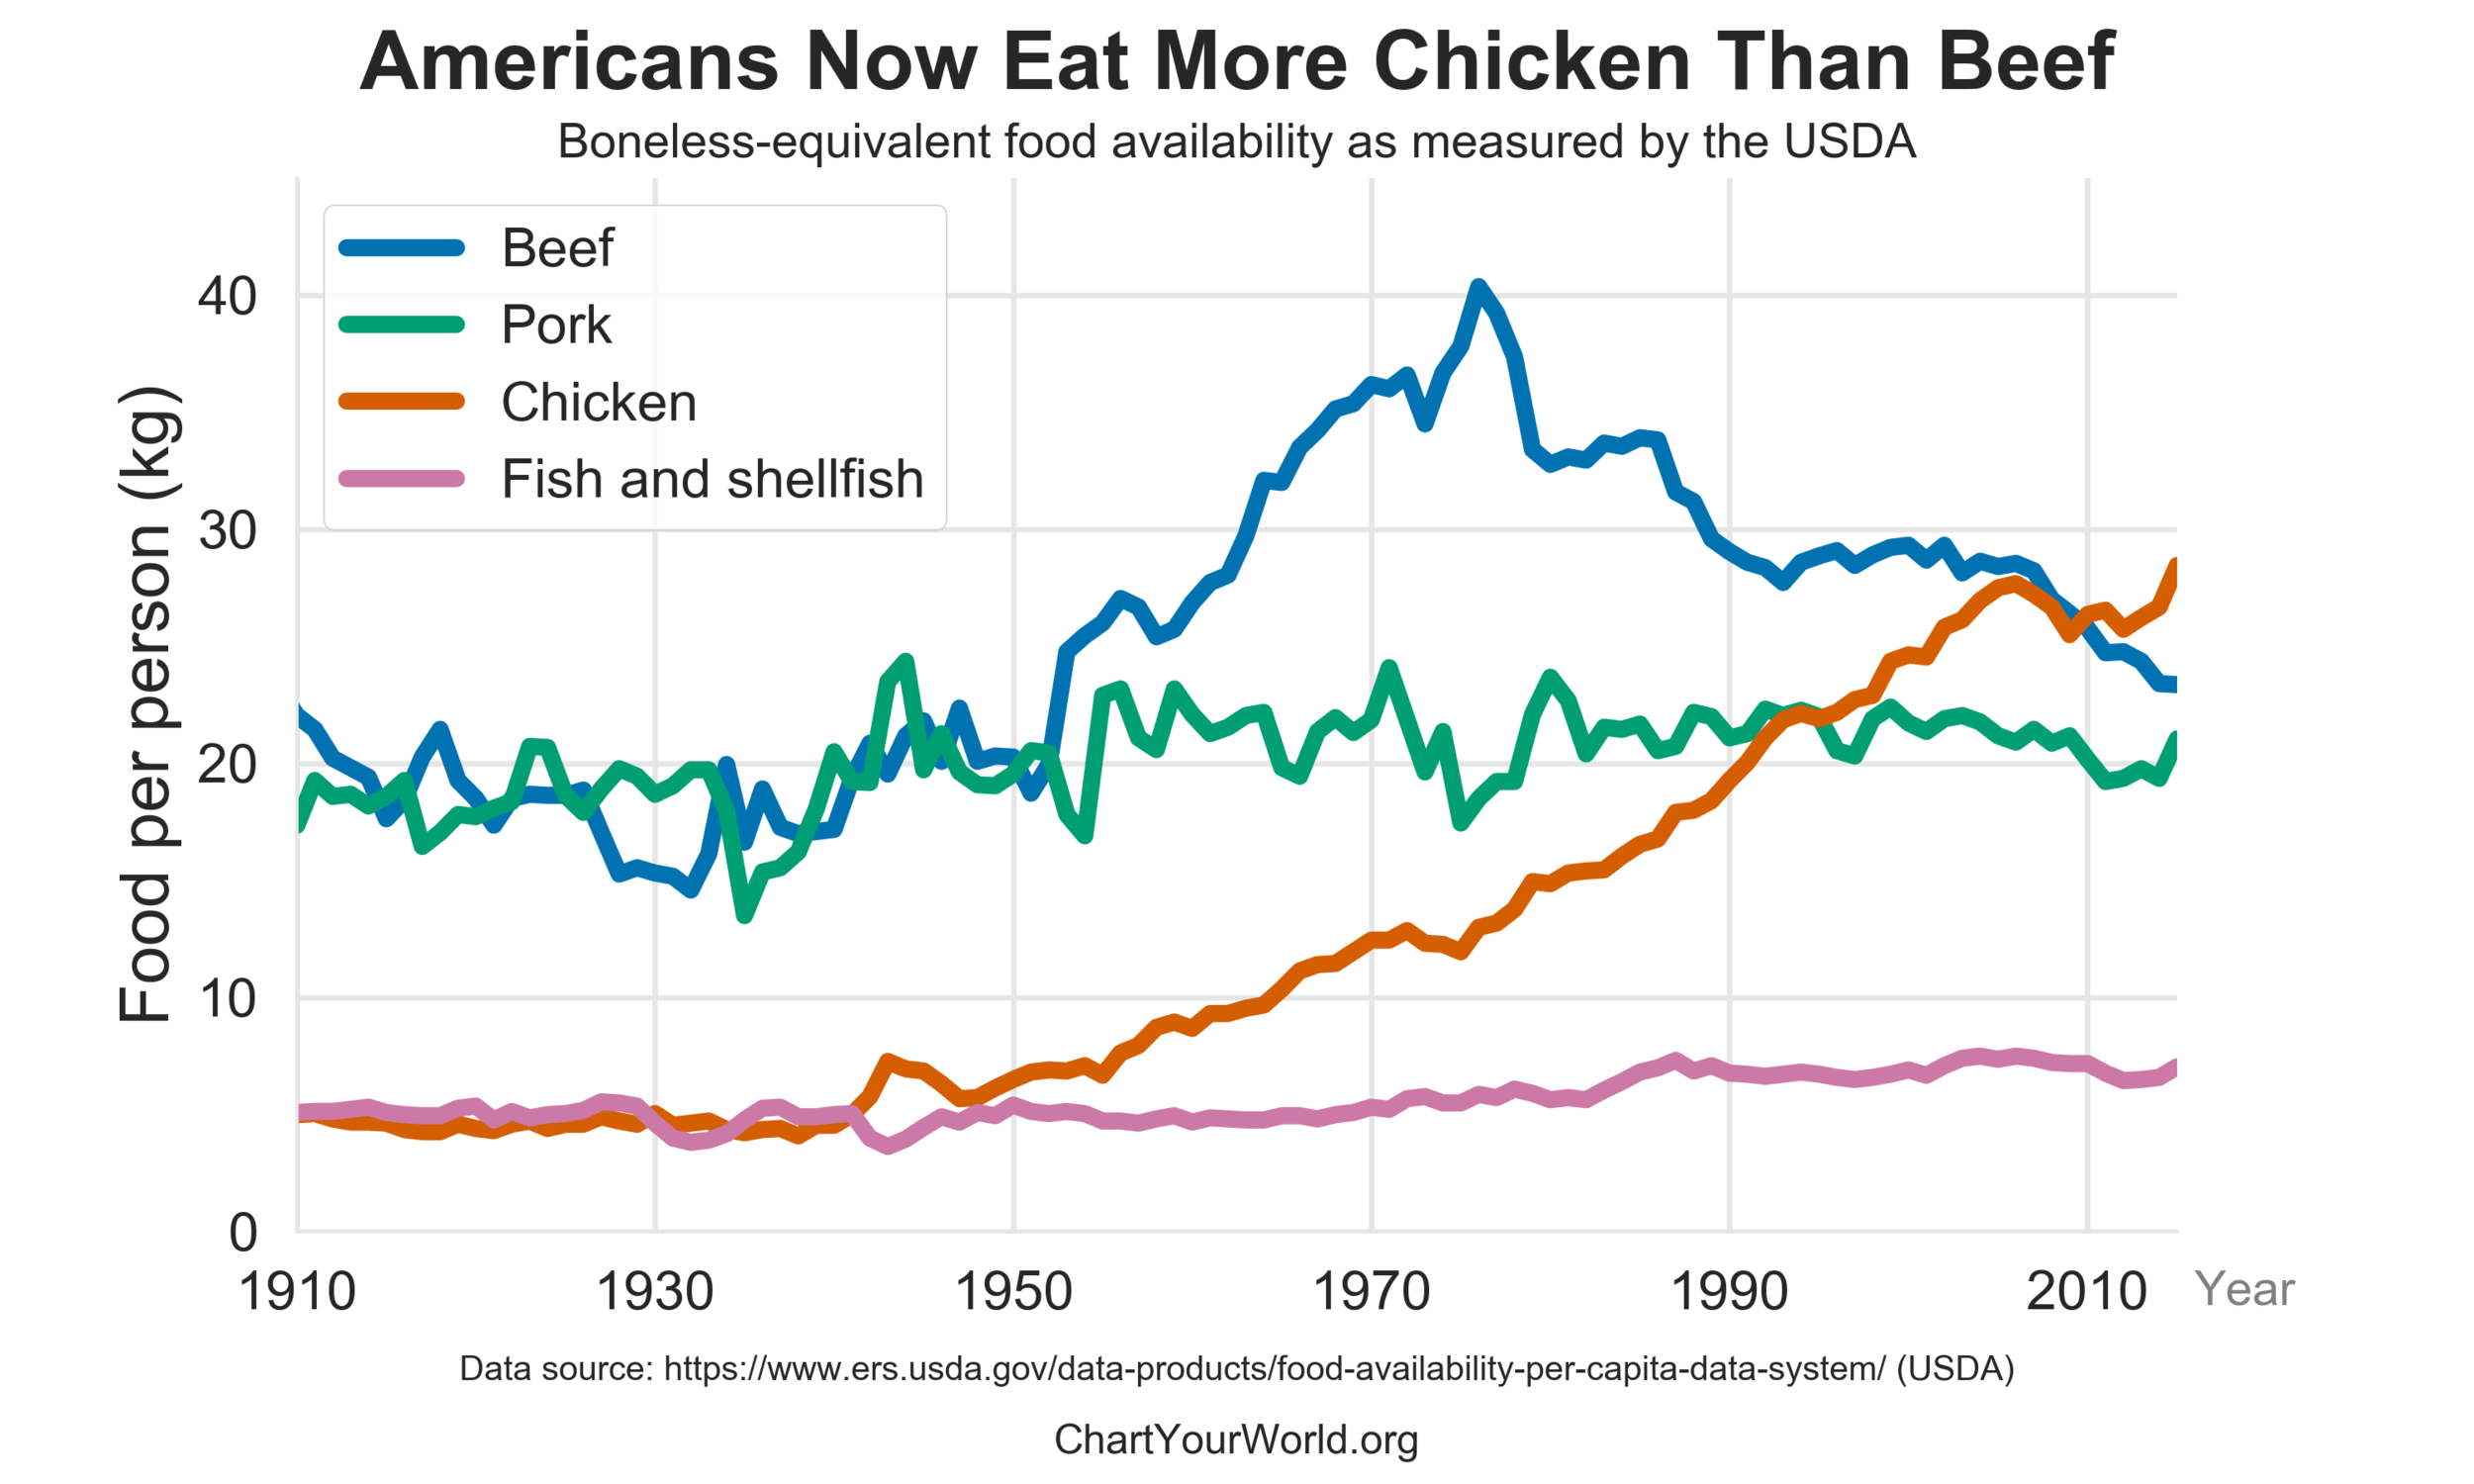 us_meat_poultry_fish_by_year.png